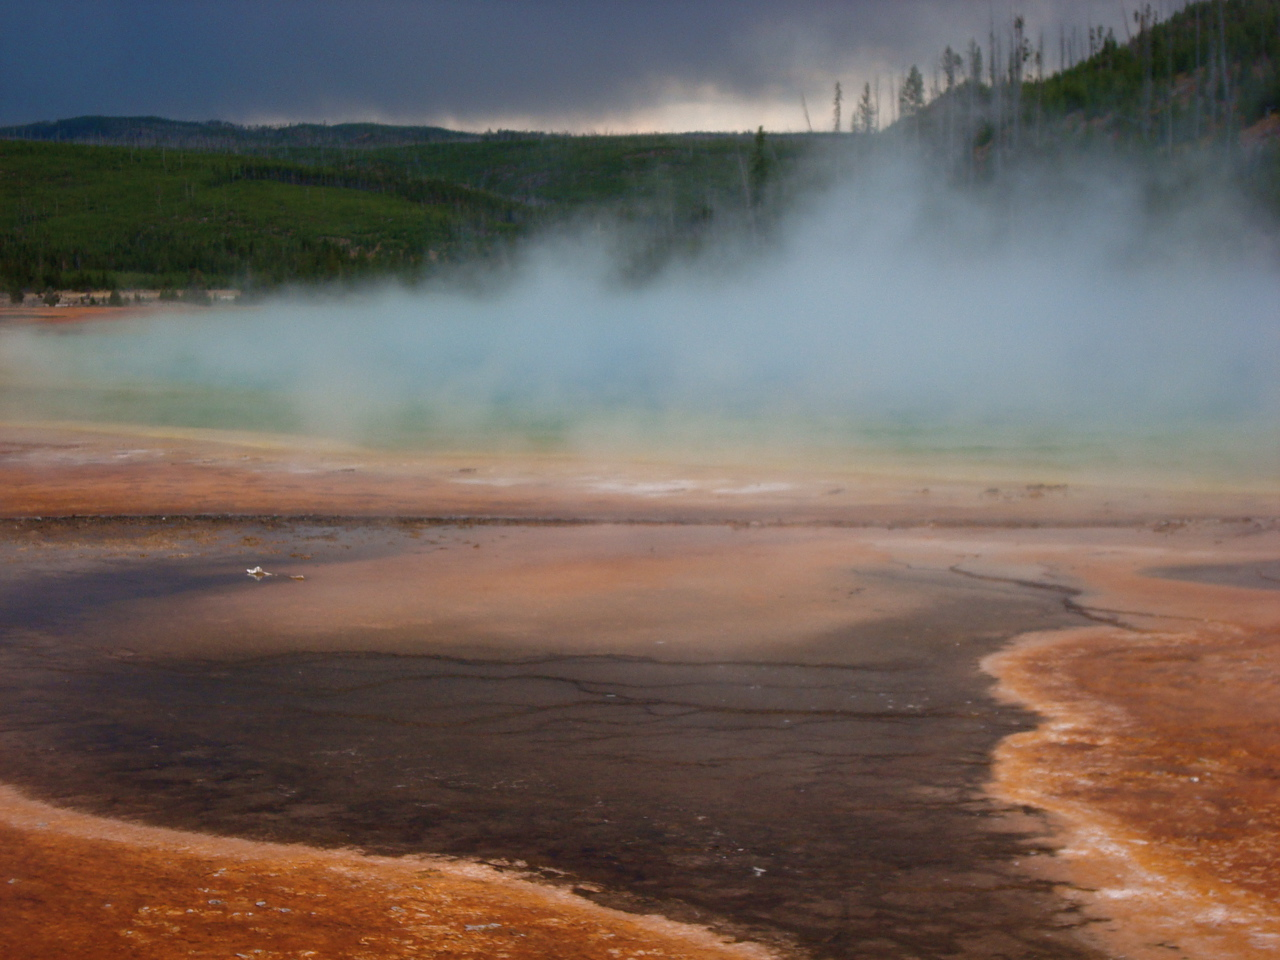 Day 262/366: Grand Prismatic Spring and Approaching Storm